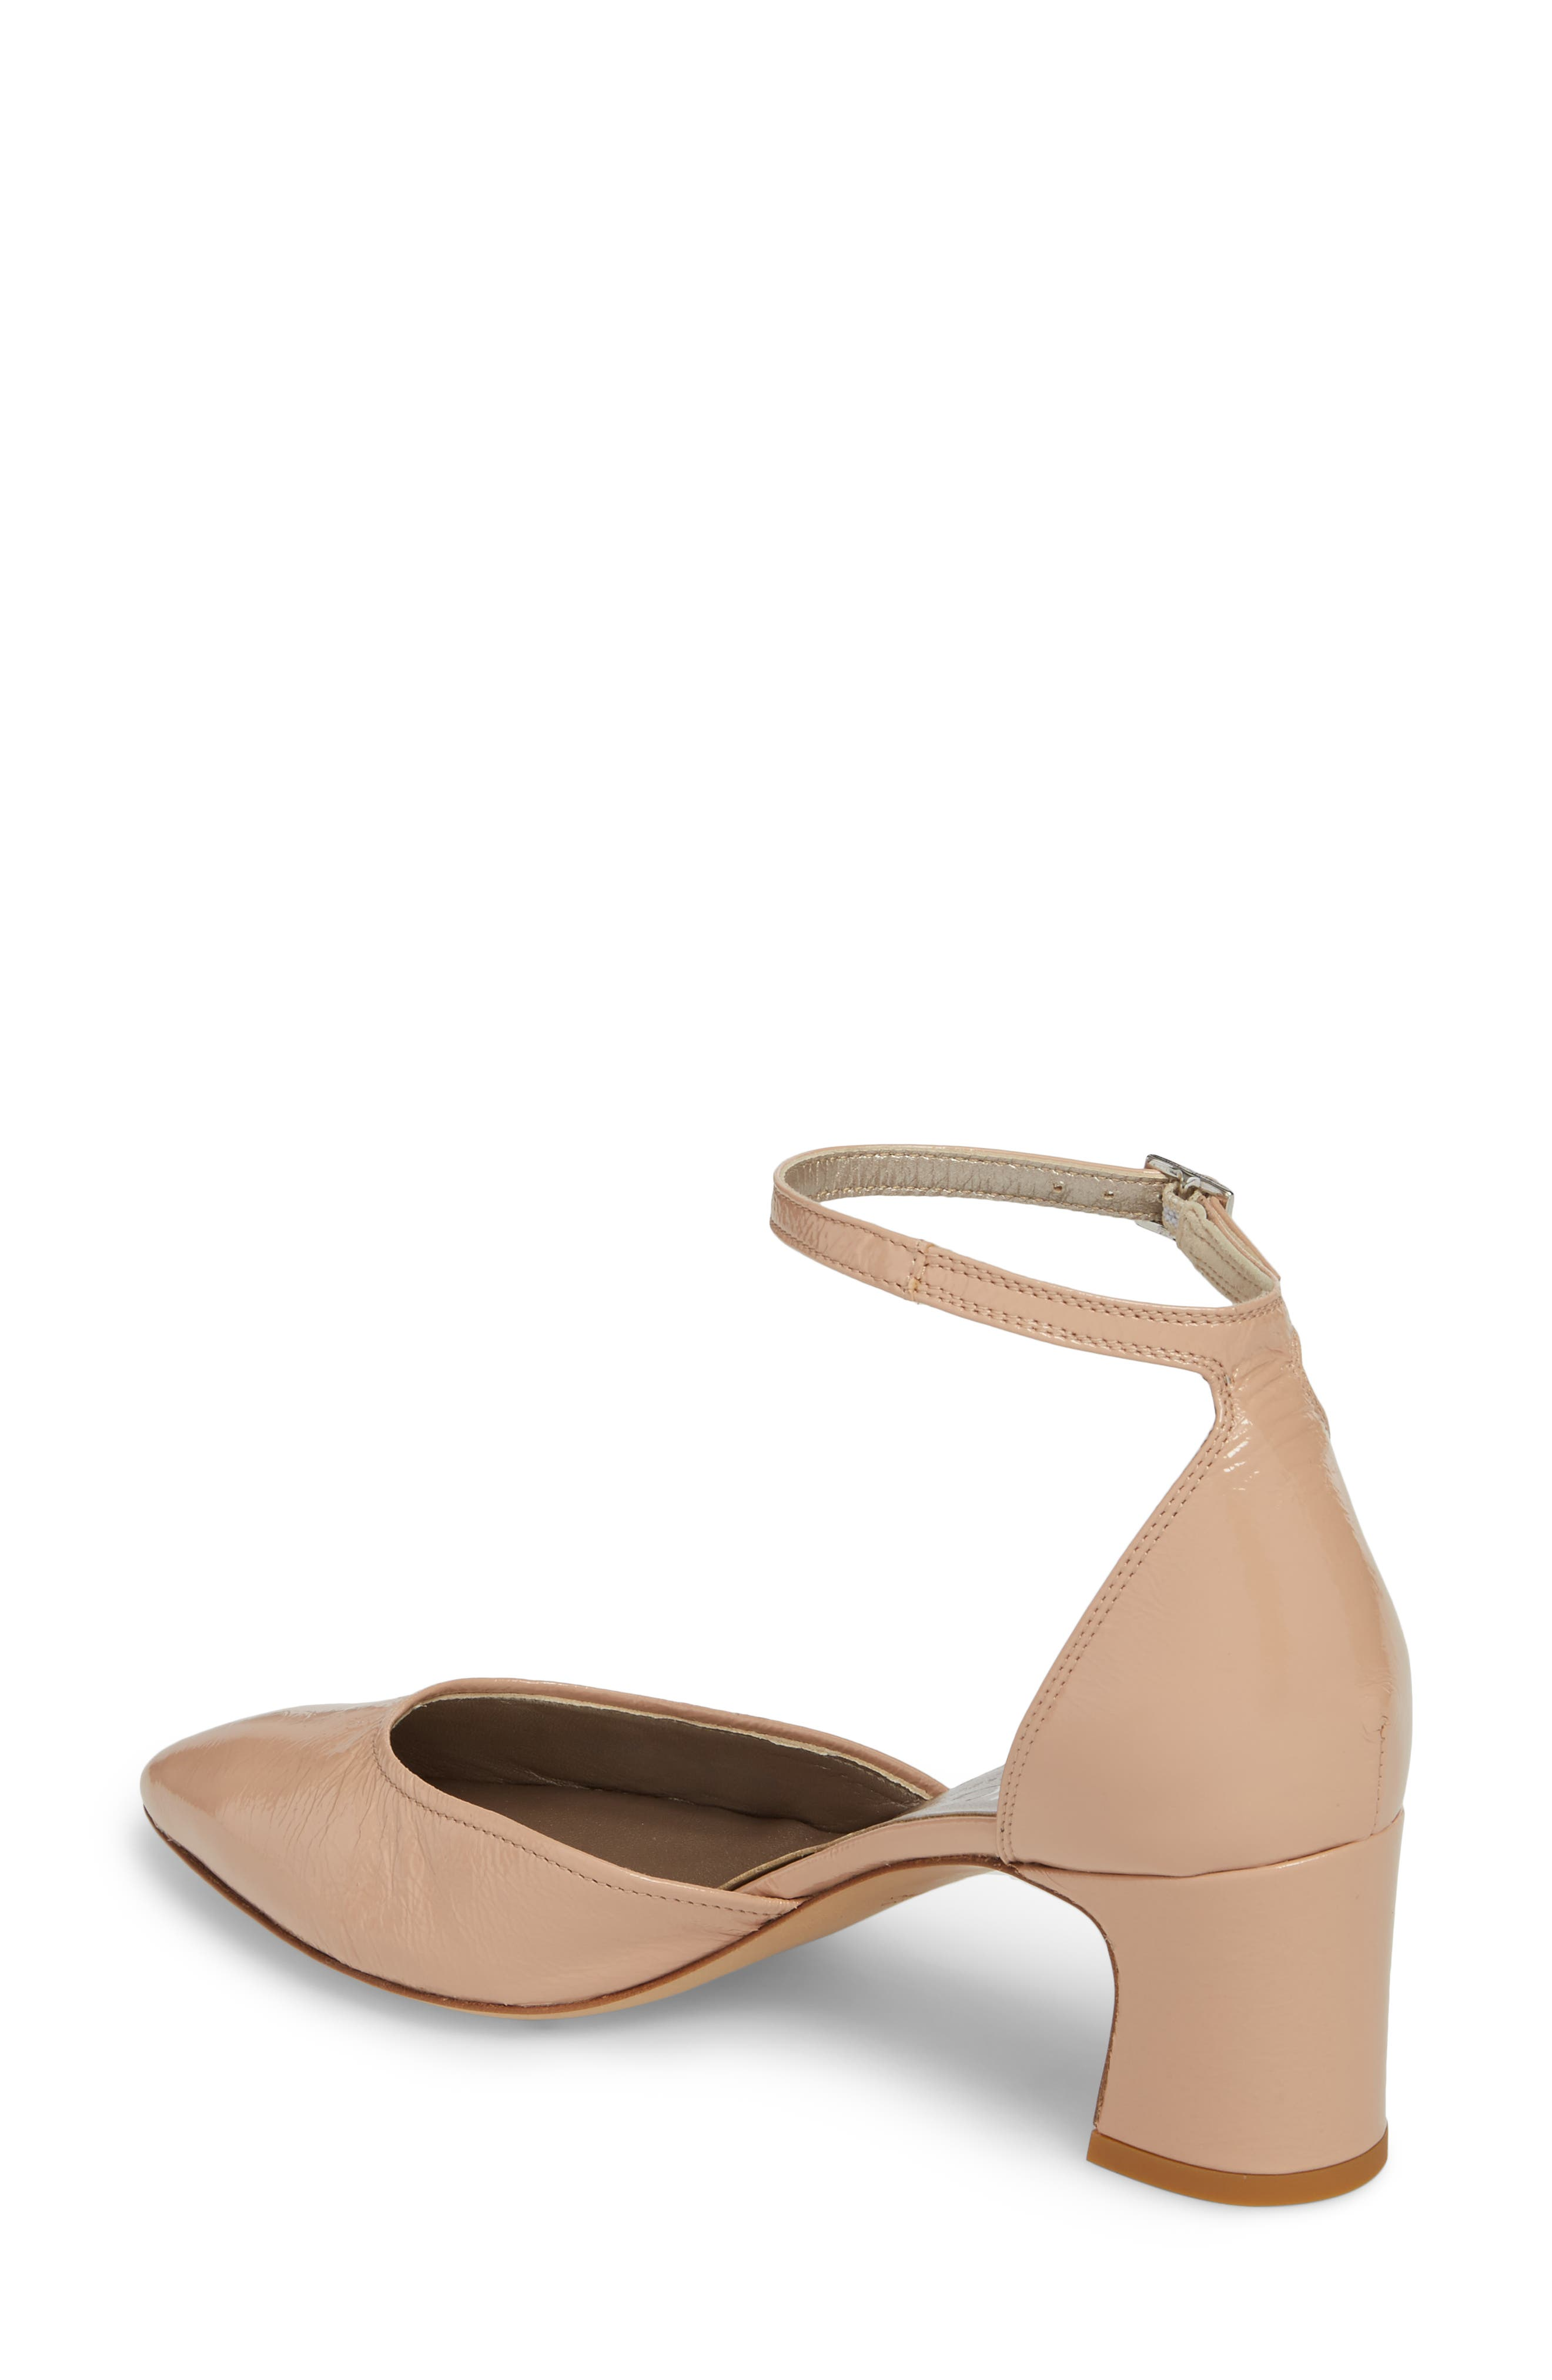 d'Orsay Ankle Strap Pump,                             Alternate thumbnail 2, color,                             Nude Glammy Leather